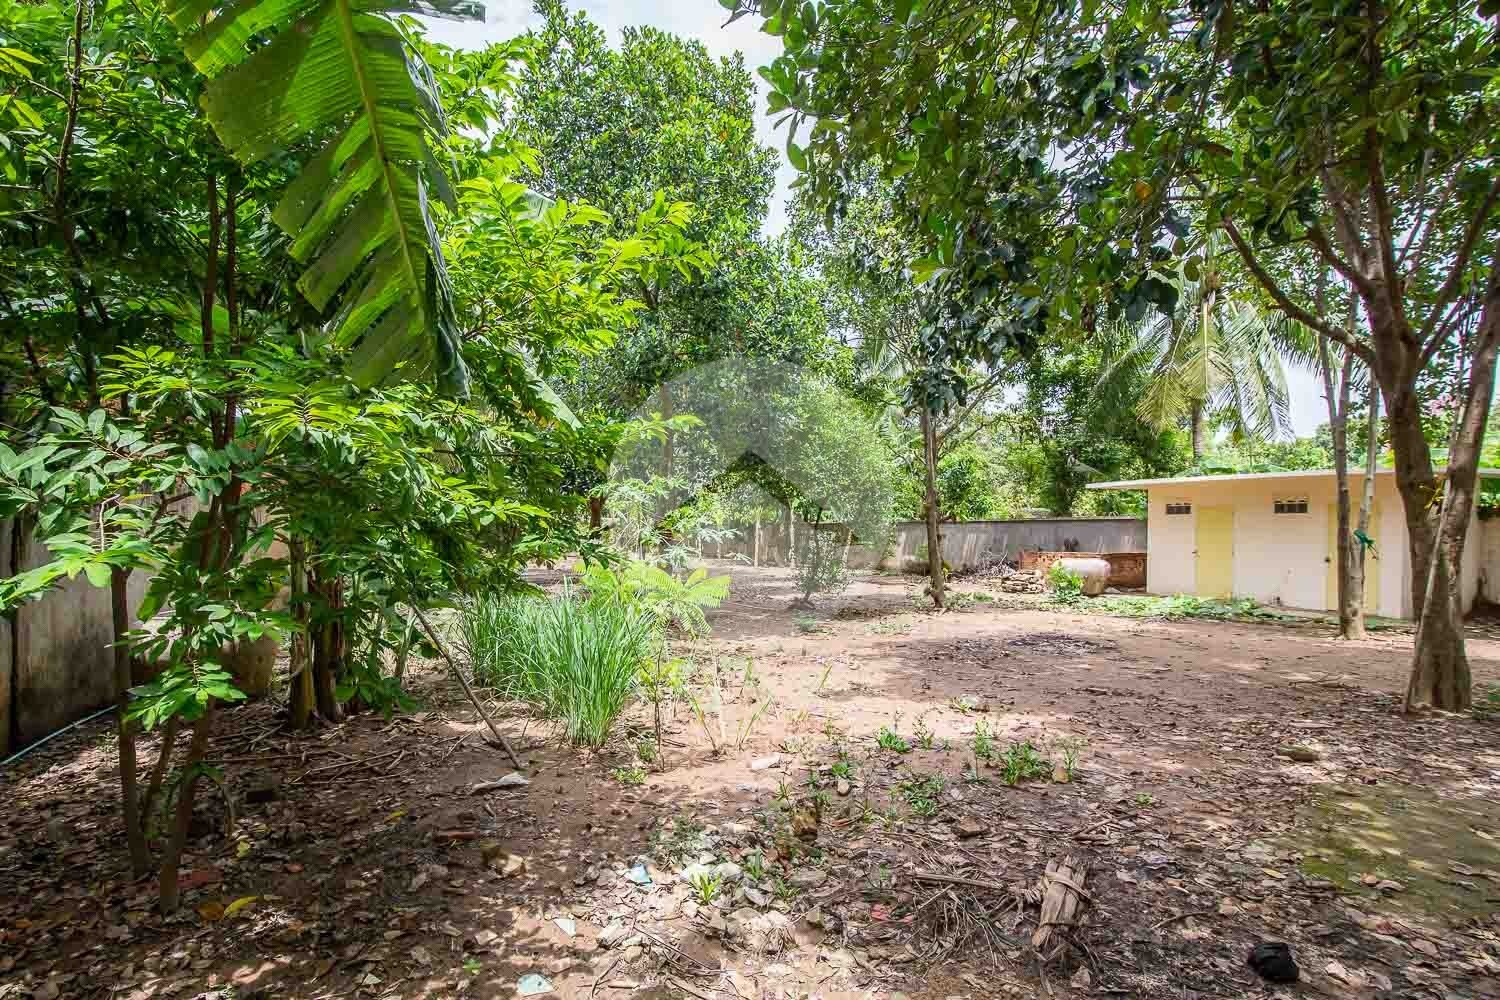 3,600 Sqm Commercial Land For Sale - Nirouth, Phnom Penh